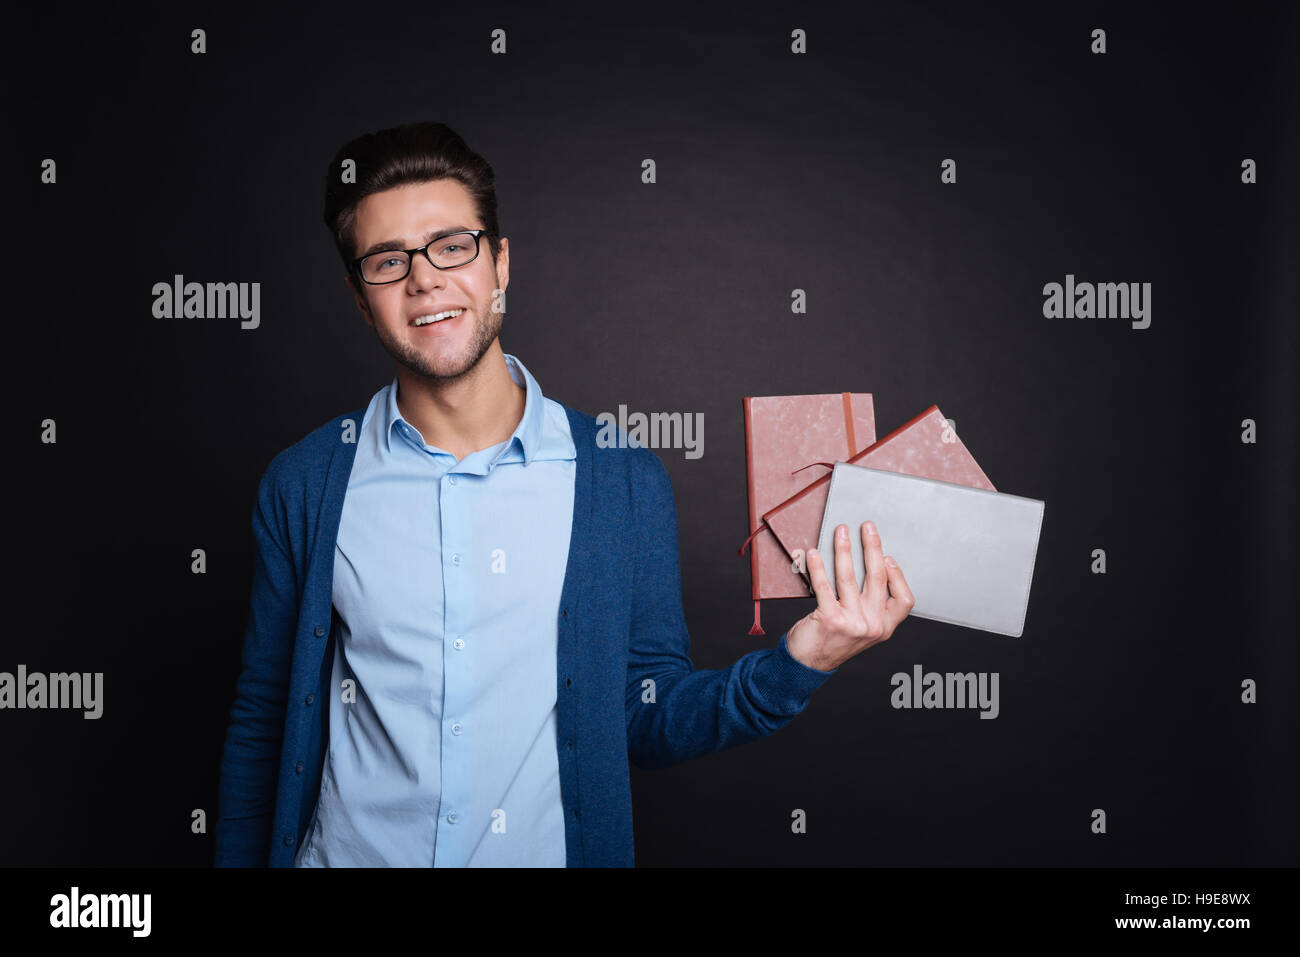 Pleasant smiling man holding diaries. - Stock Image